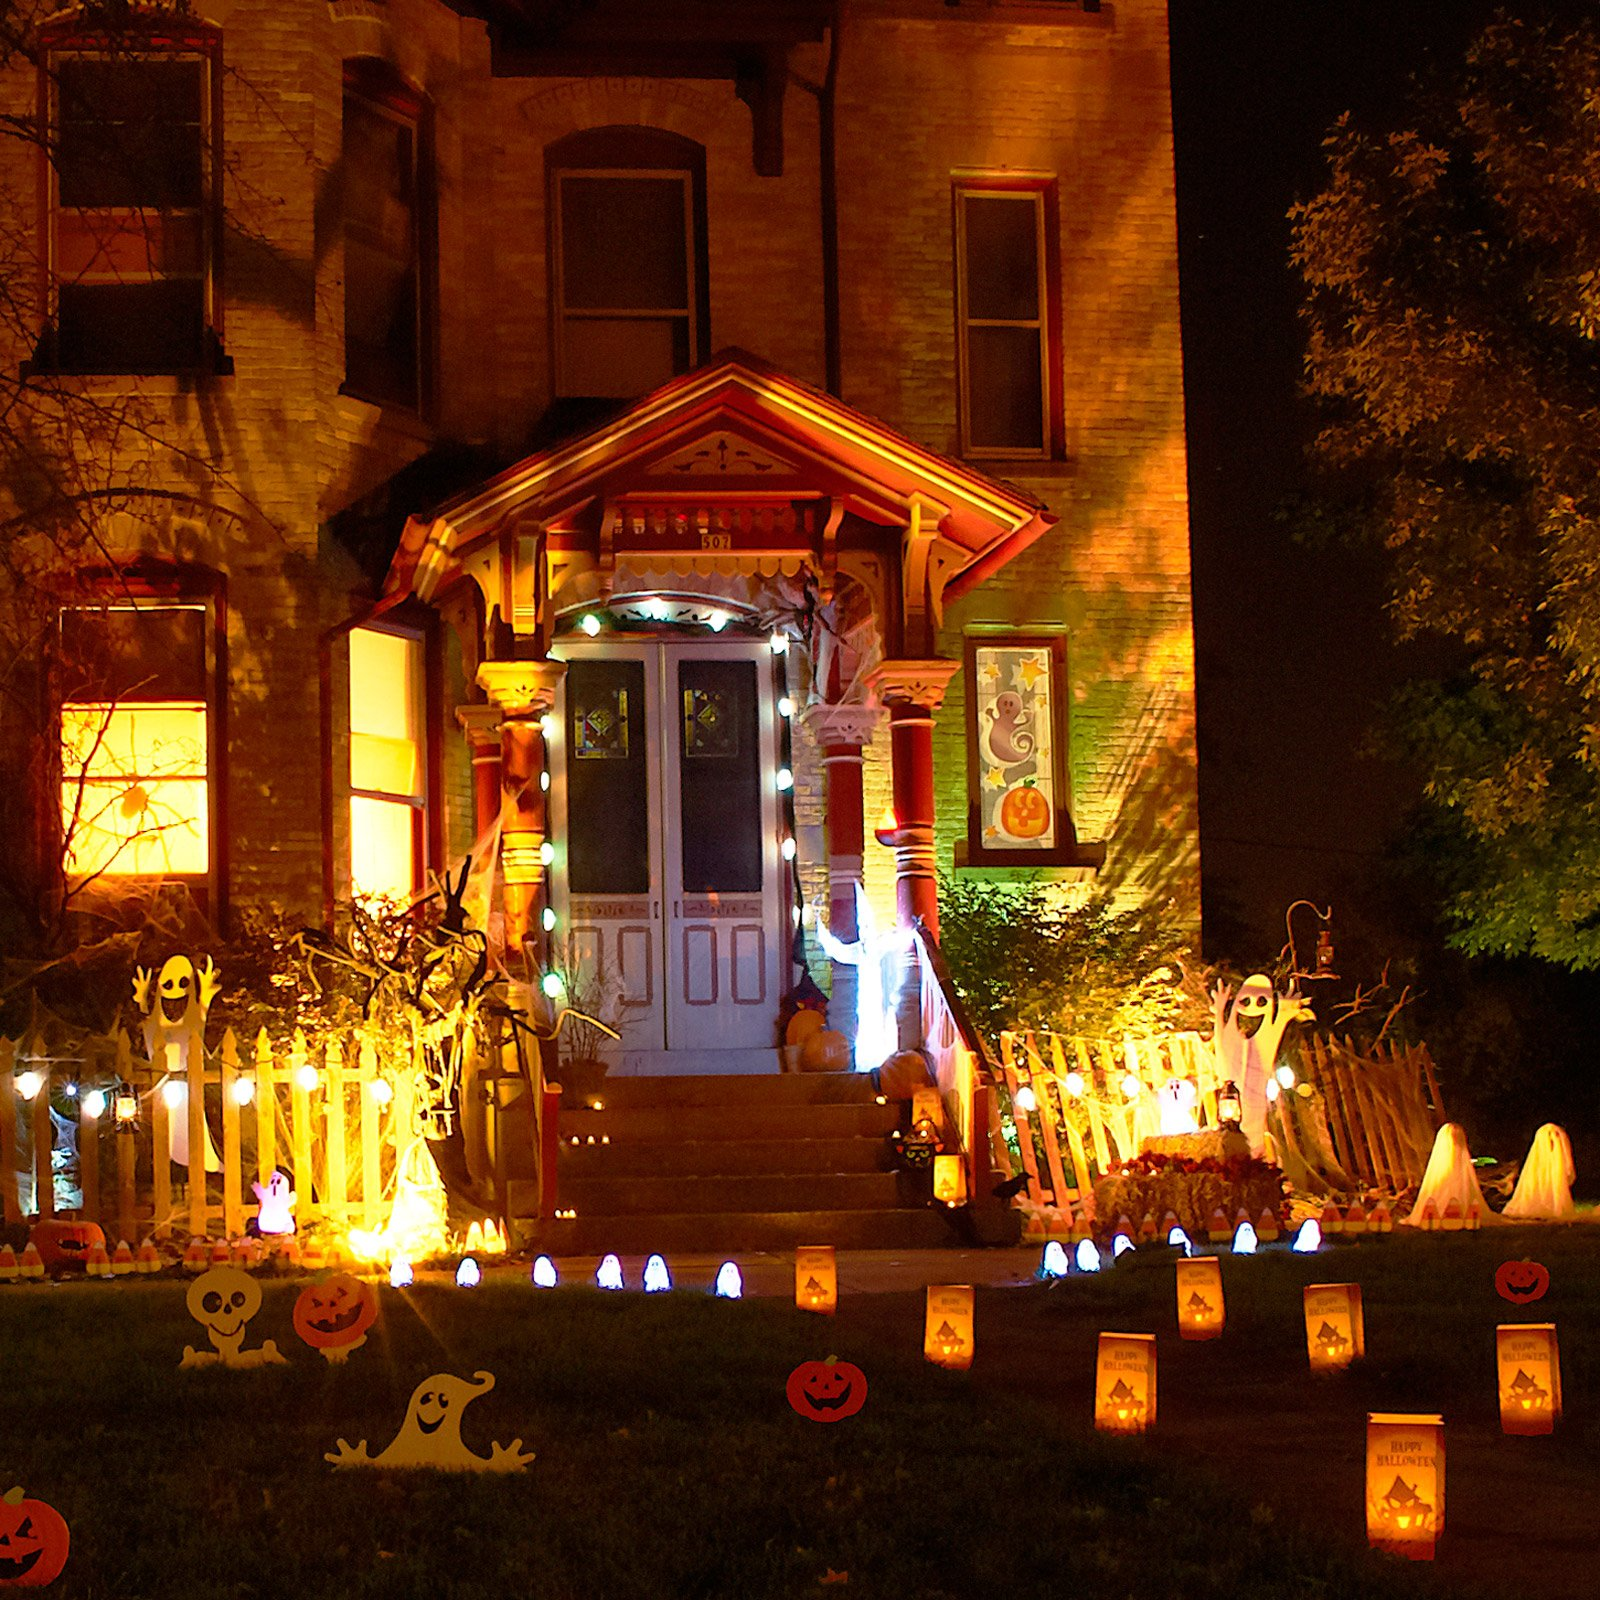 the-eccentric-halloween-exterior-decorations-mildirectory-decoration-images-unique-outdoor-halloween-creative-decorations.